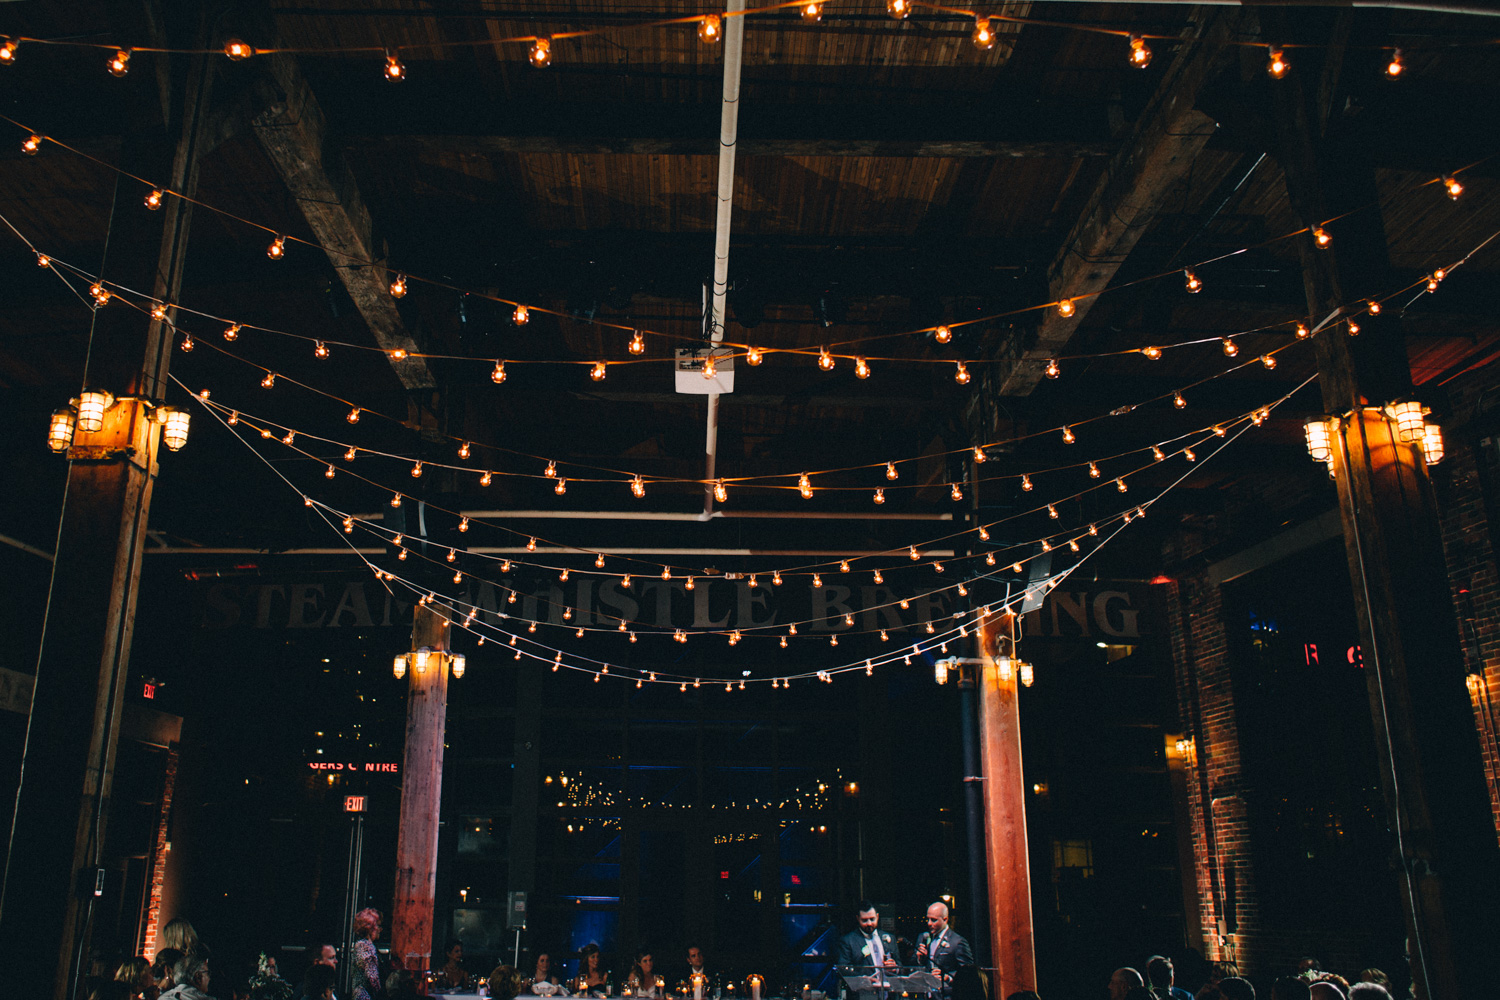 Steam-Whistle-Brewery-wedding-photos-Toronto-wedding-photography-by-Sam-Wong-of-Artanis-Collective_55.jpg